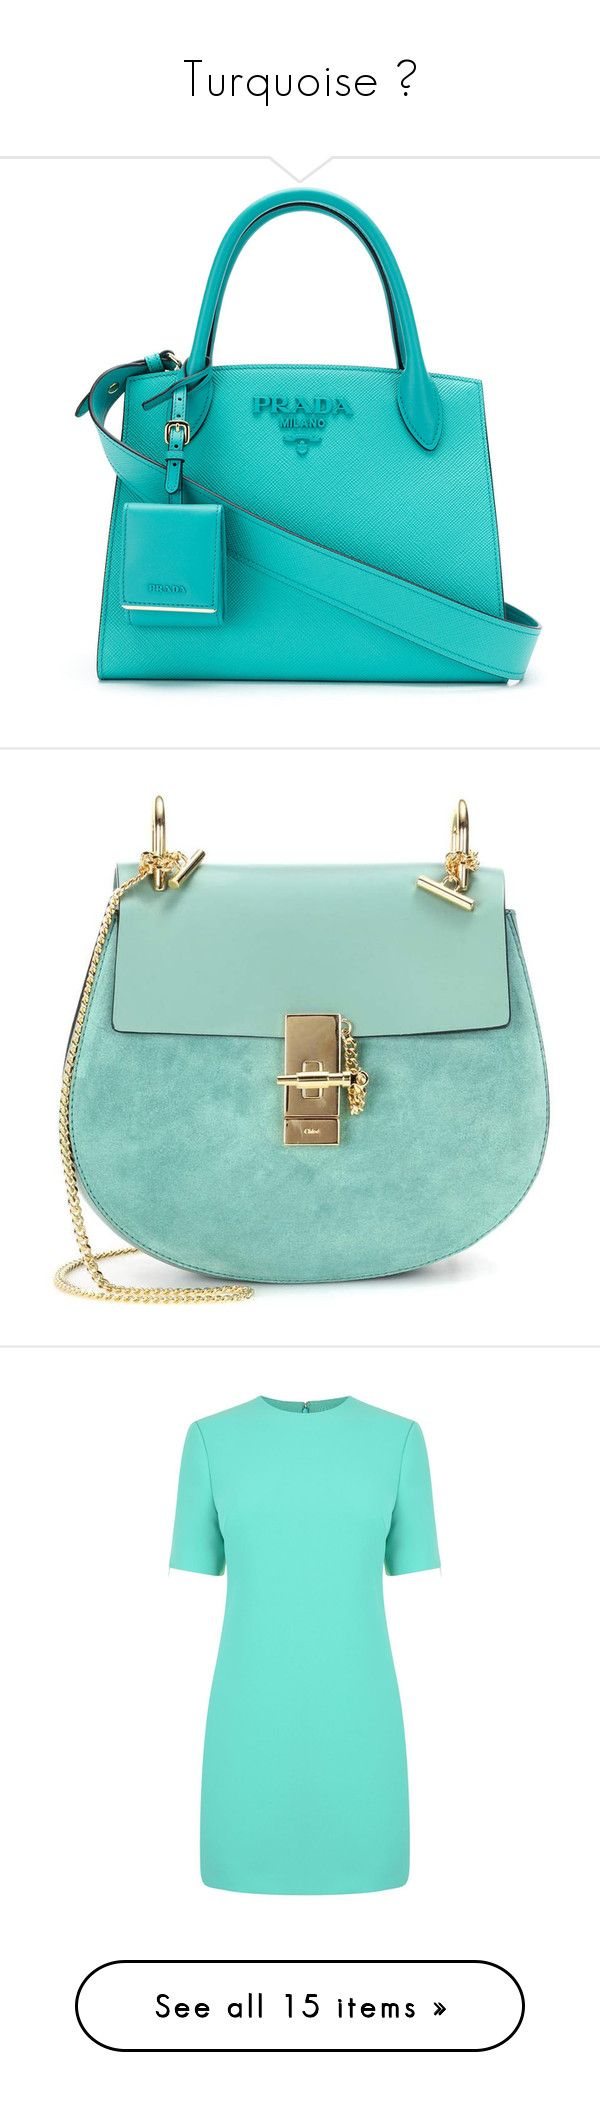 """Turquoise ✨"" by arya14 ❤ liked on Polyvore featuring bags, handbags, shoulder bags, bolsas, green, genuine leather handbags, leather shoulder bag, green shoulder bag, leather handbags and chloe shoulder bag"